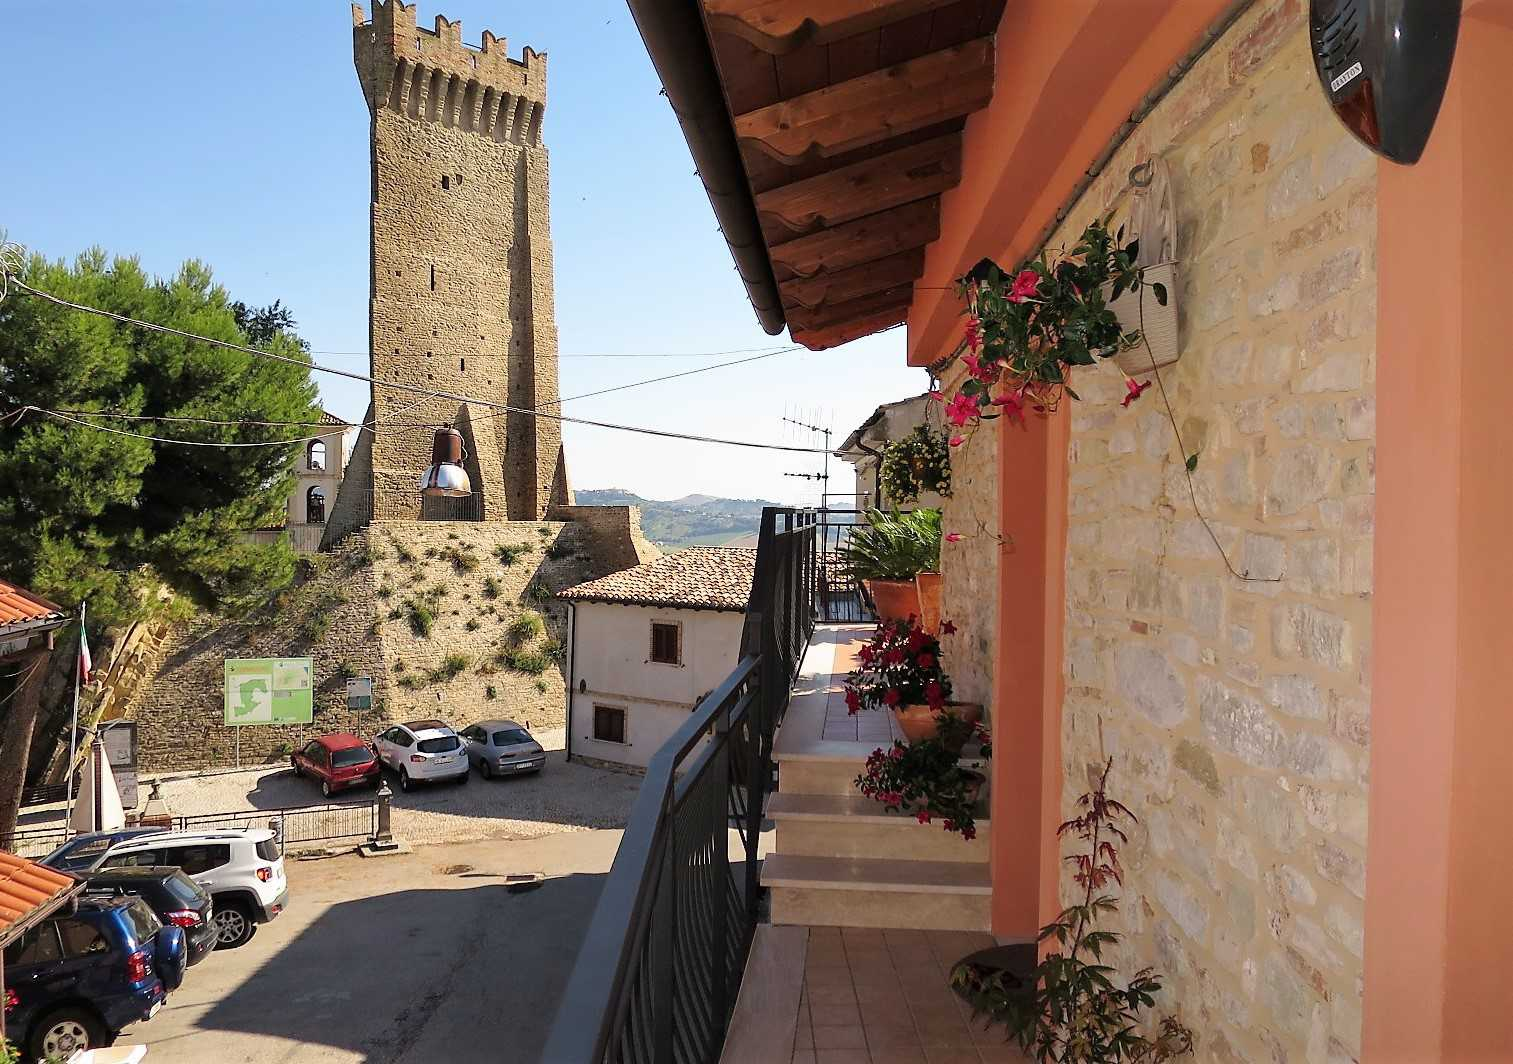 Semi-detached House Semi-detached House for sale Cermignano (TE), Casa Gualtieri - Cermignano - EUR 201.814 240